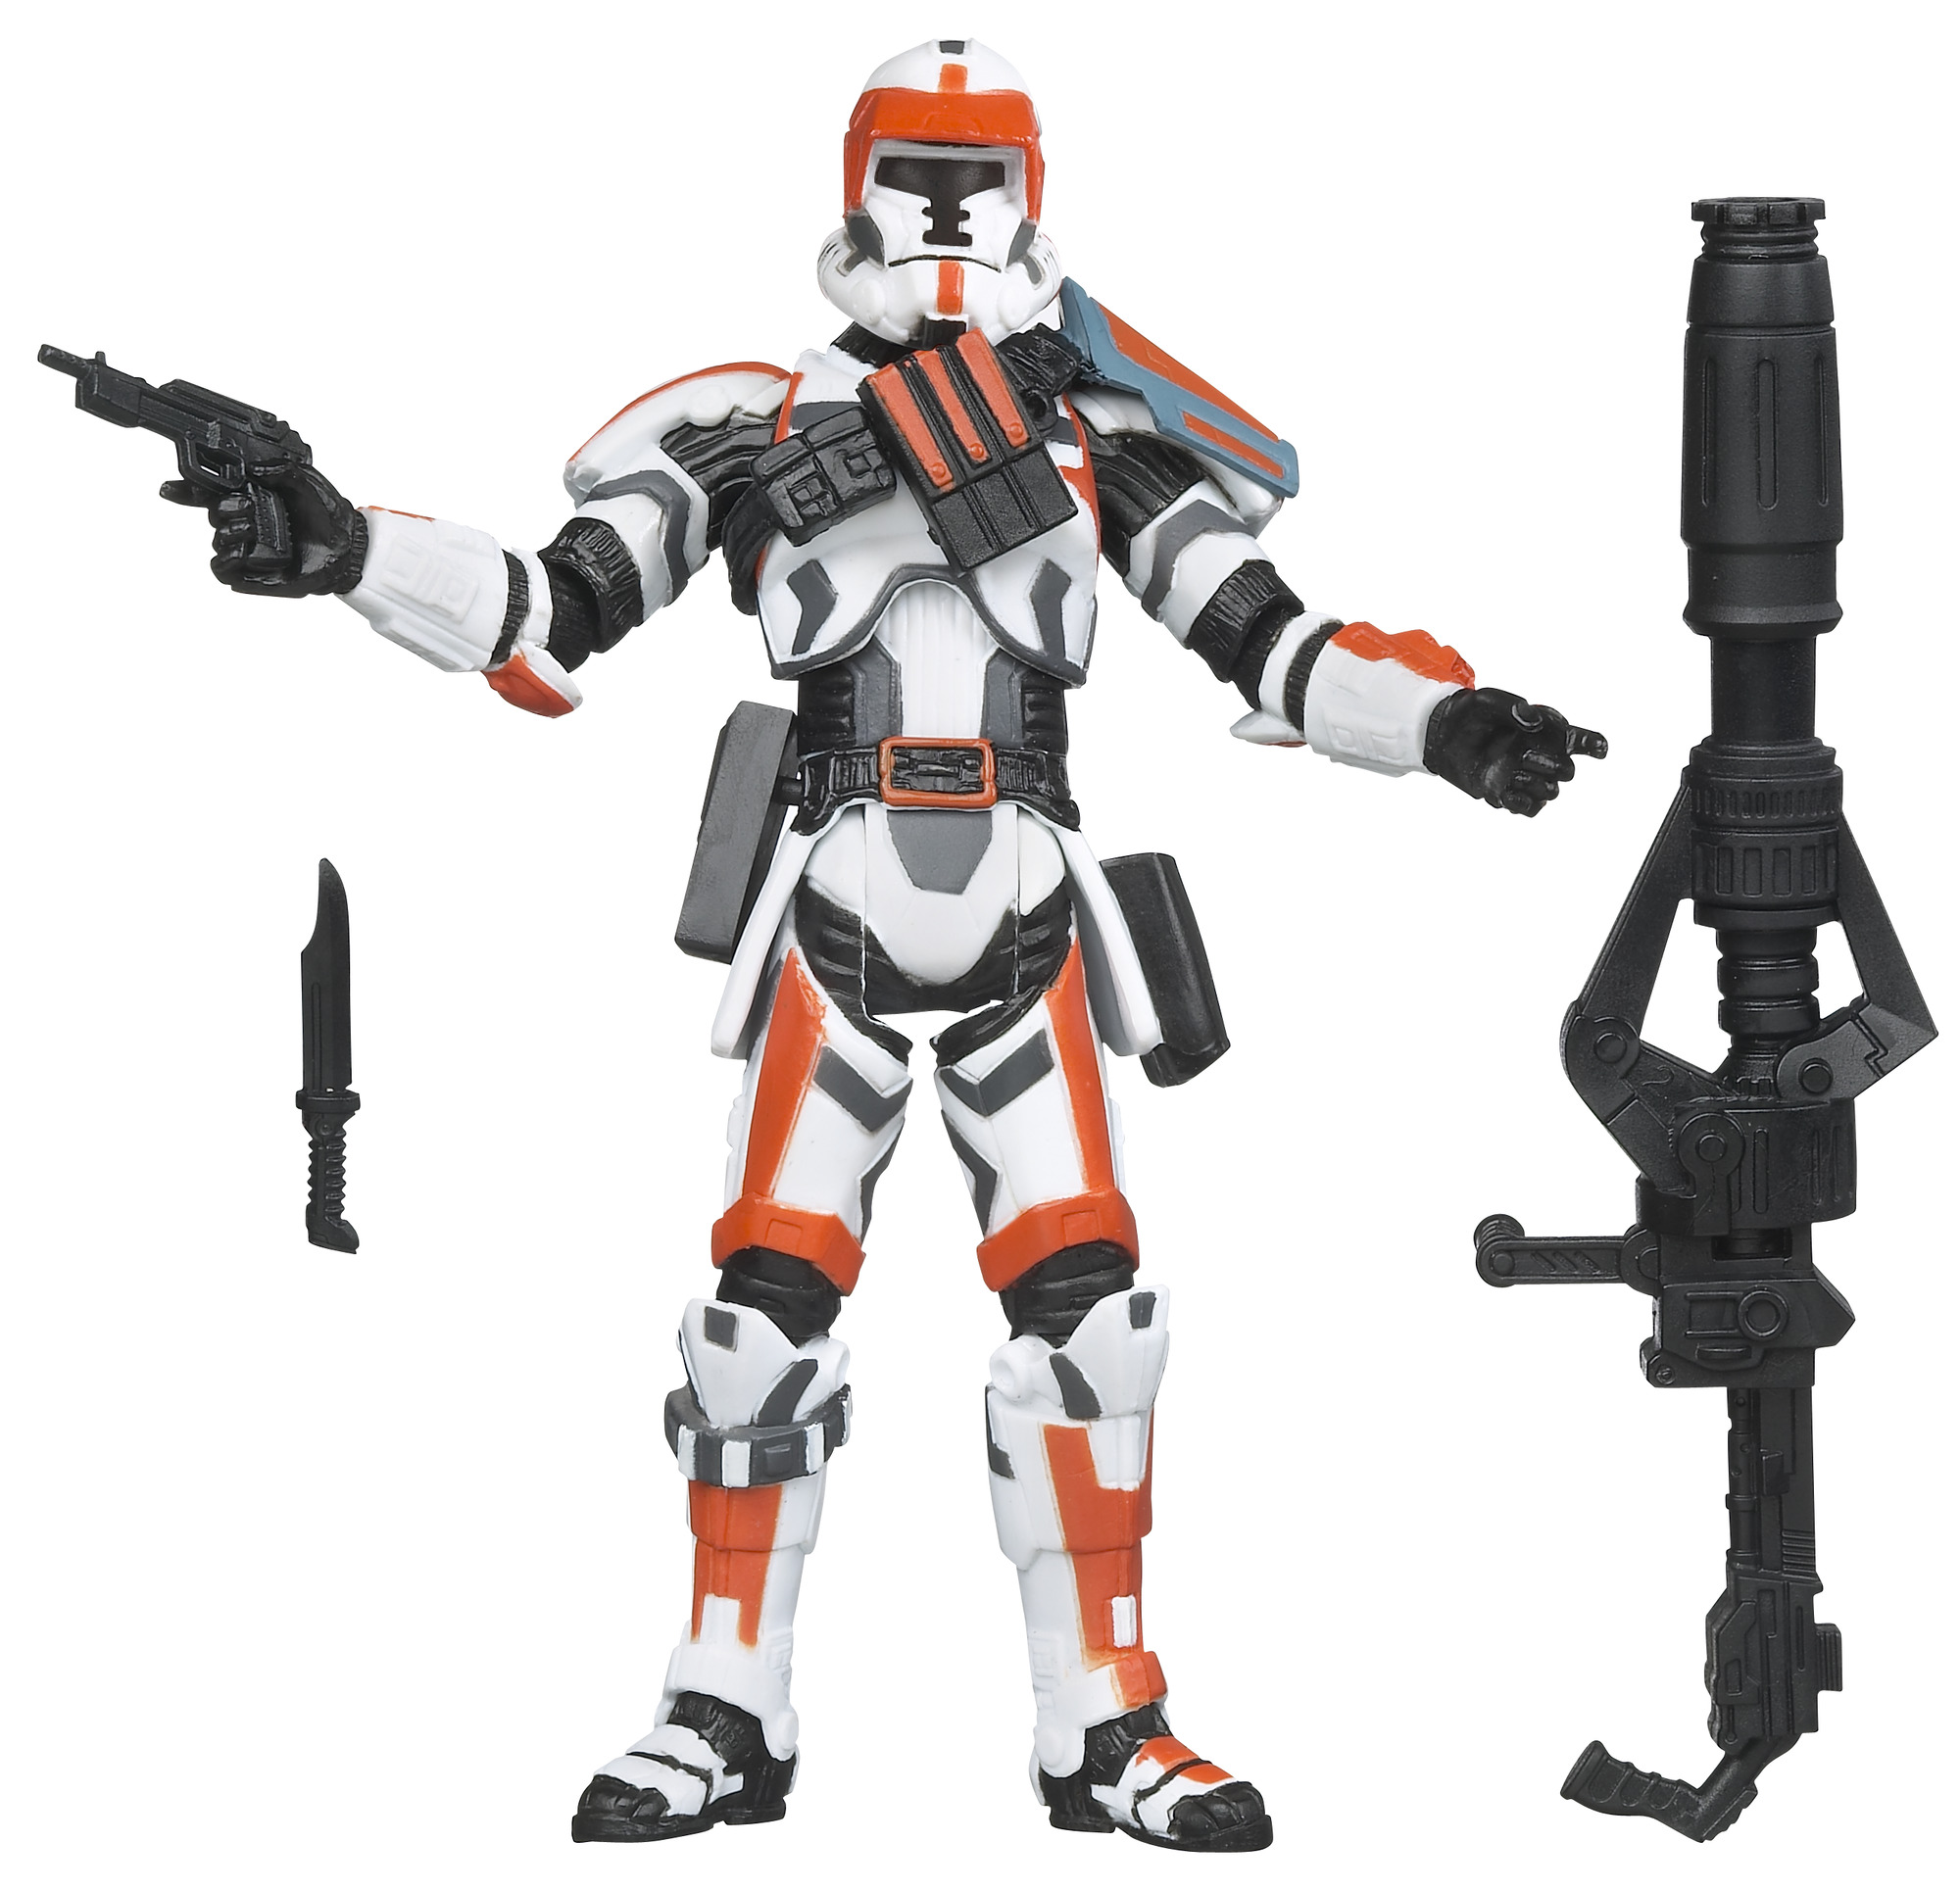 Star Wars Vintage Collection 2012 Republic Trooper Action Figure [The Old Republic]